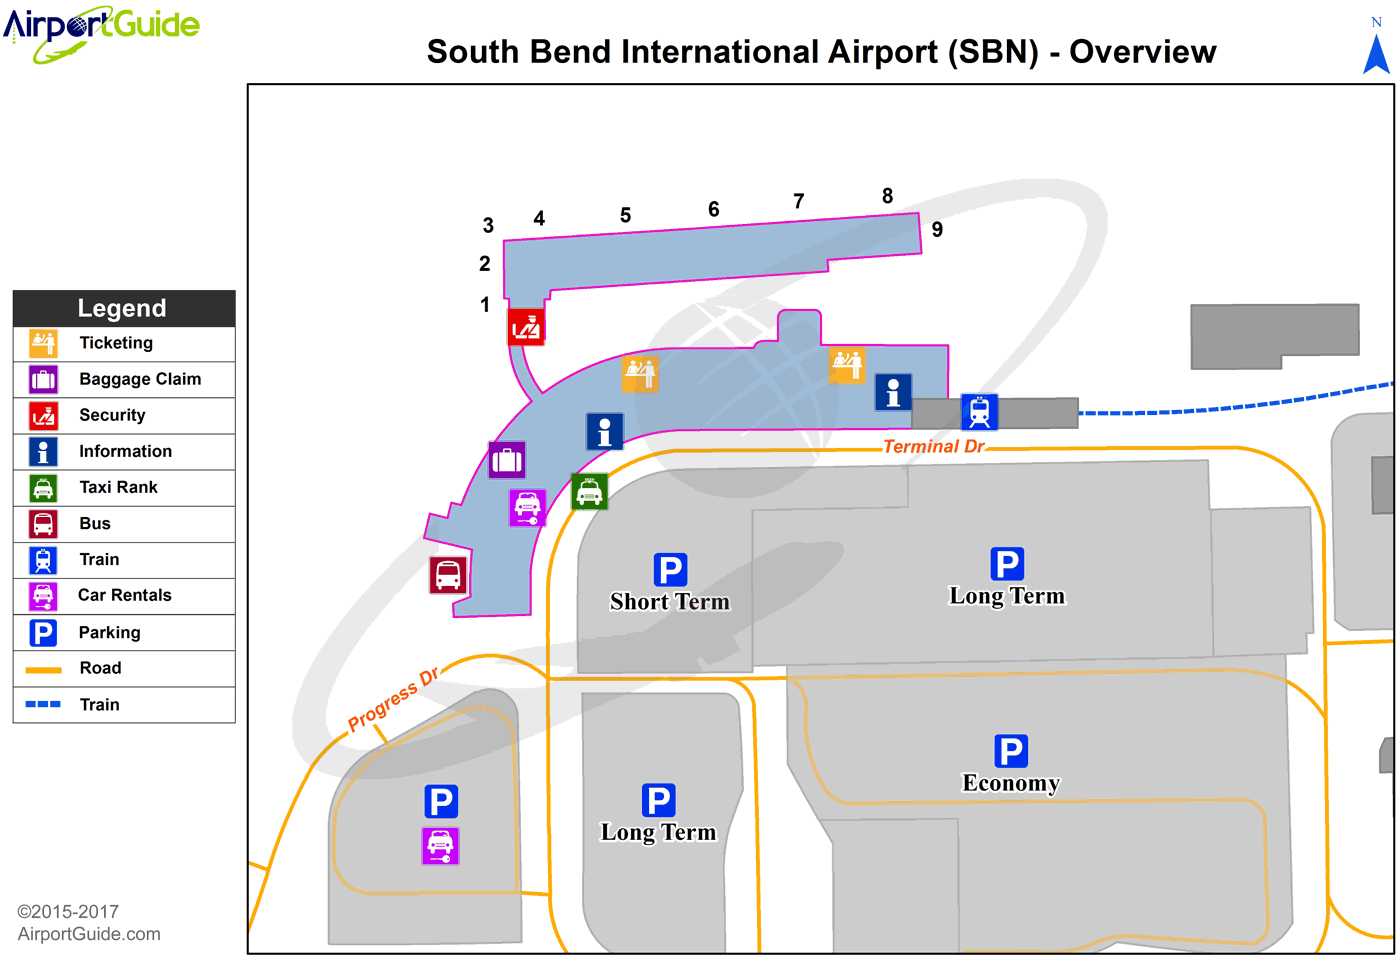 South Bend - South Bend International (SBN) Airport Terminal Map - Overview